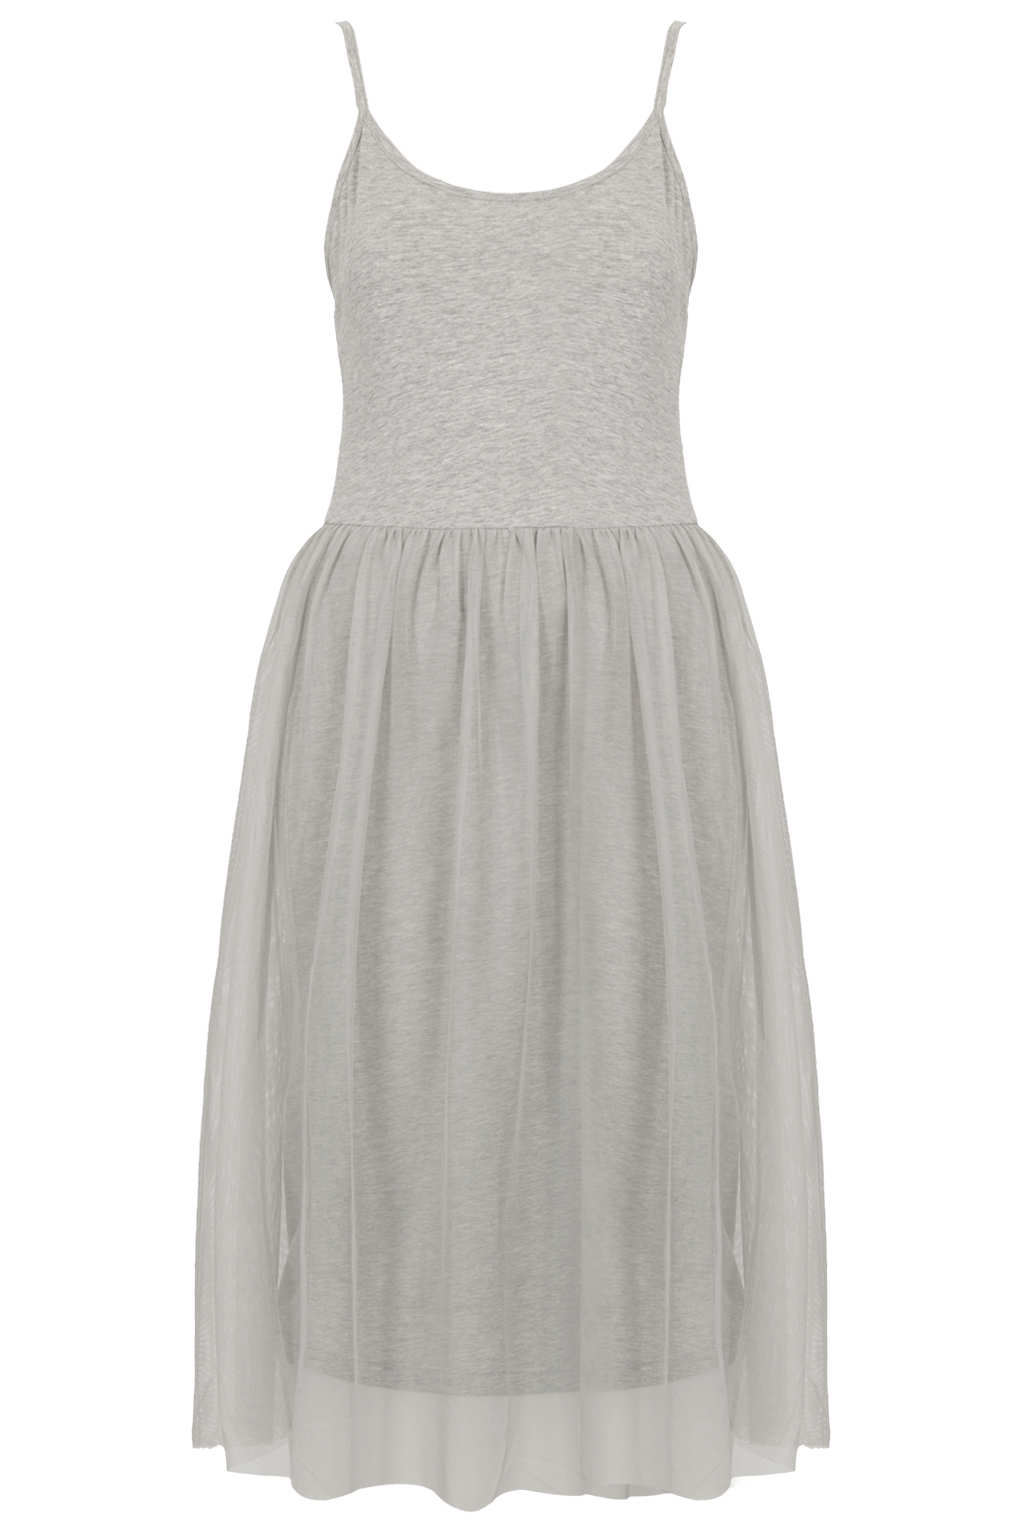 Lyst Topshop Tulle Strappy Midi Dress In Gray